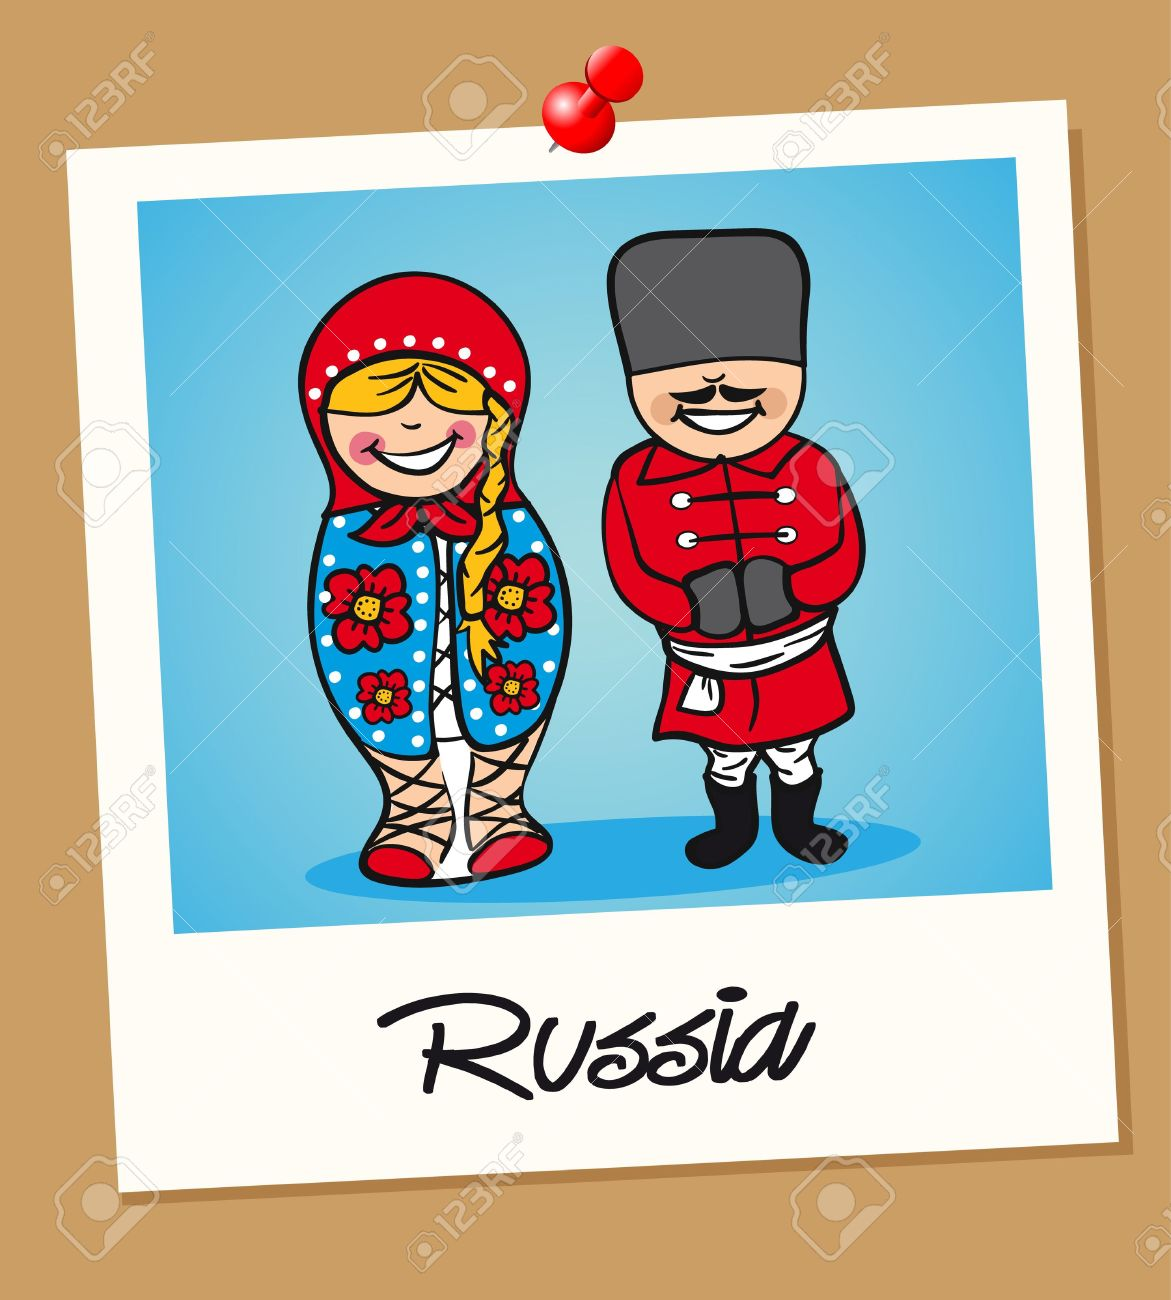 Clipart Of People In Russia.